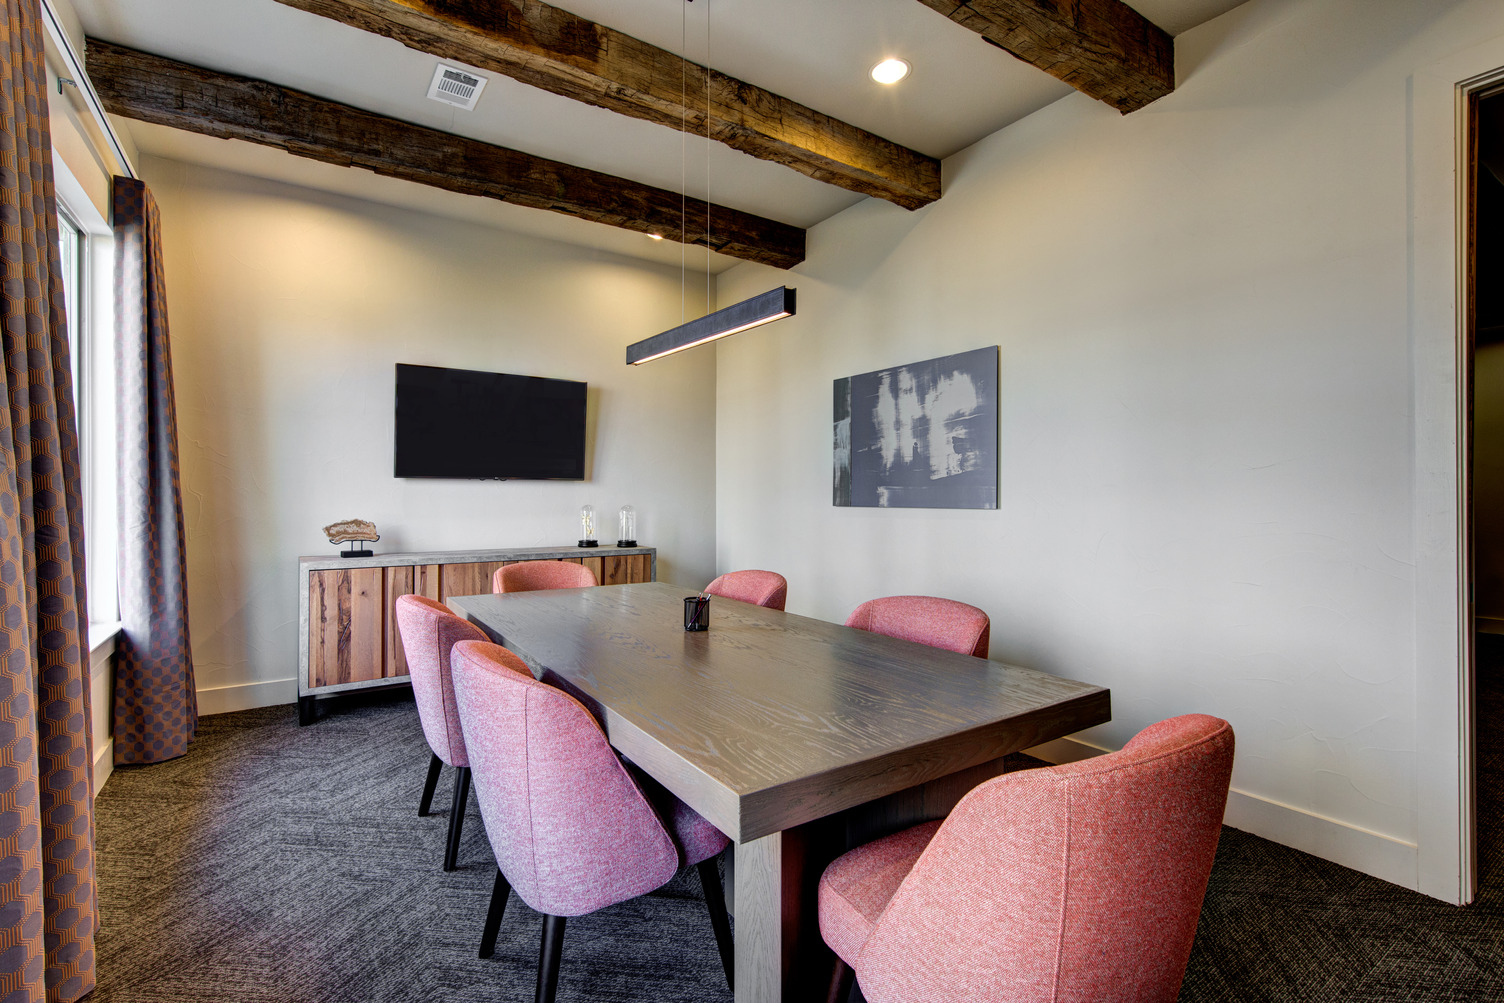 Conference room with large meeting table and wall mounted TV